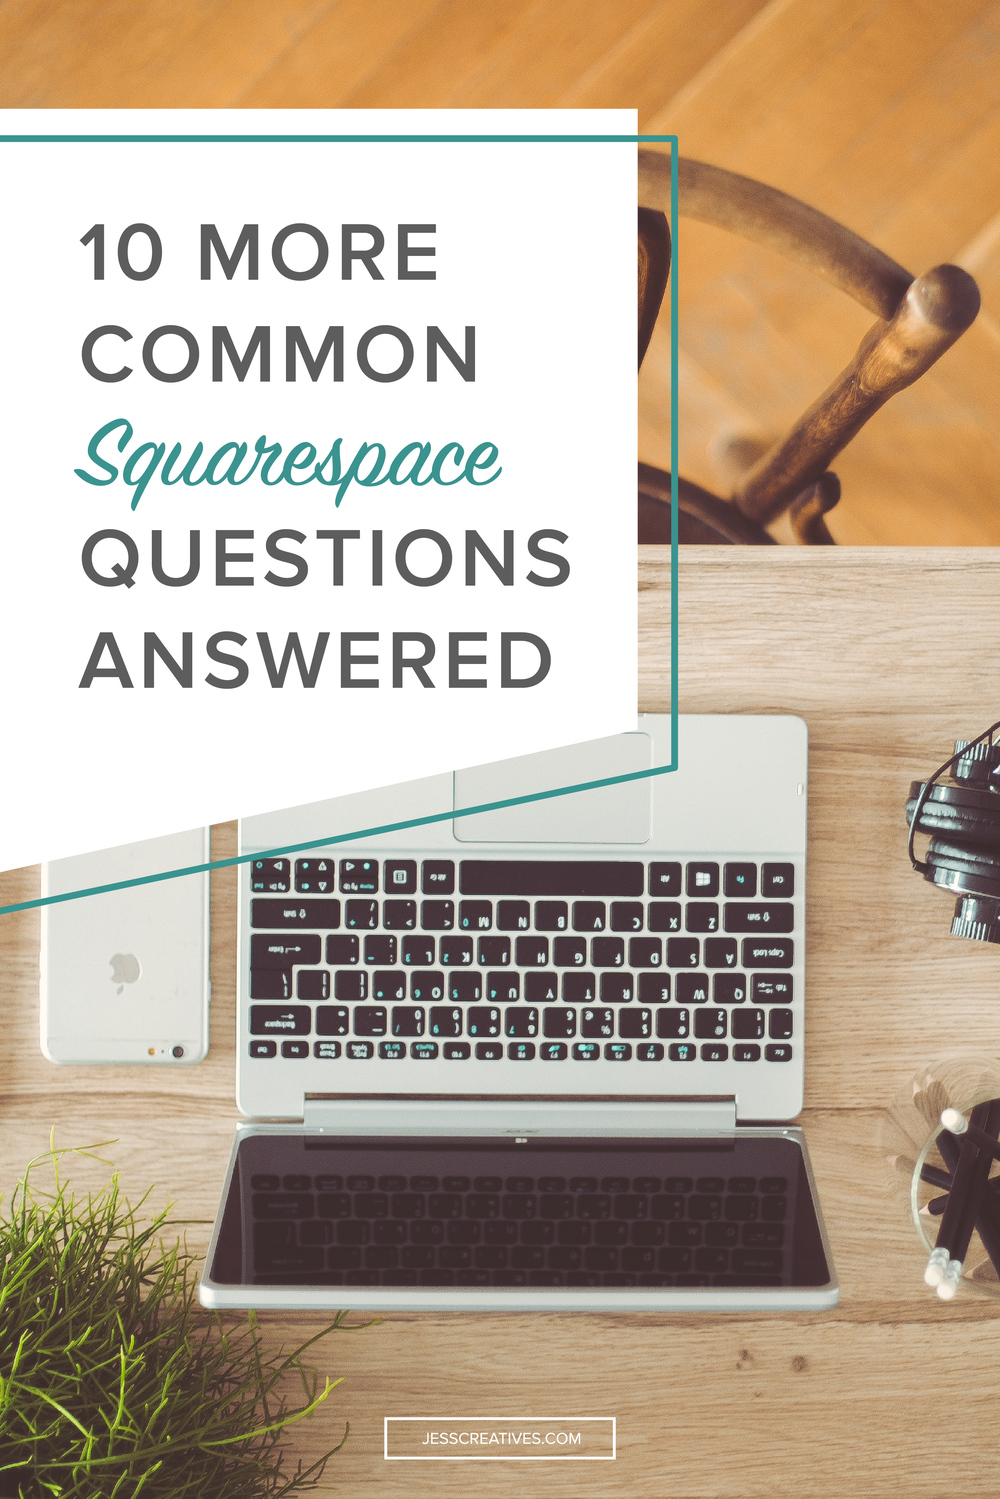 Squarespace has become a popular website platform, with it's easy-to-use interface and beautiful templates. But, with more new users comes more questions. Find out answers to adding more social sharing functionality, special codes and backing up your site!